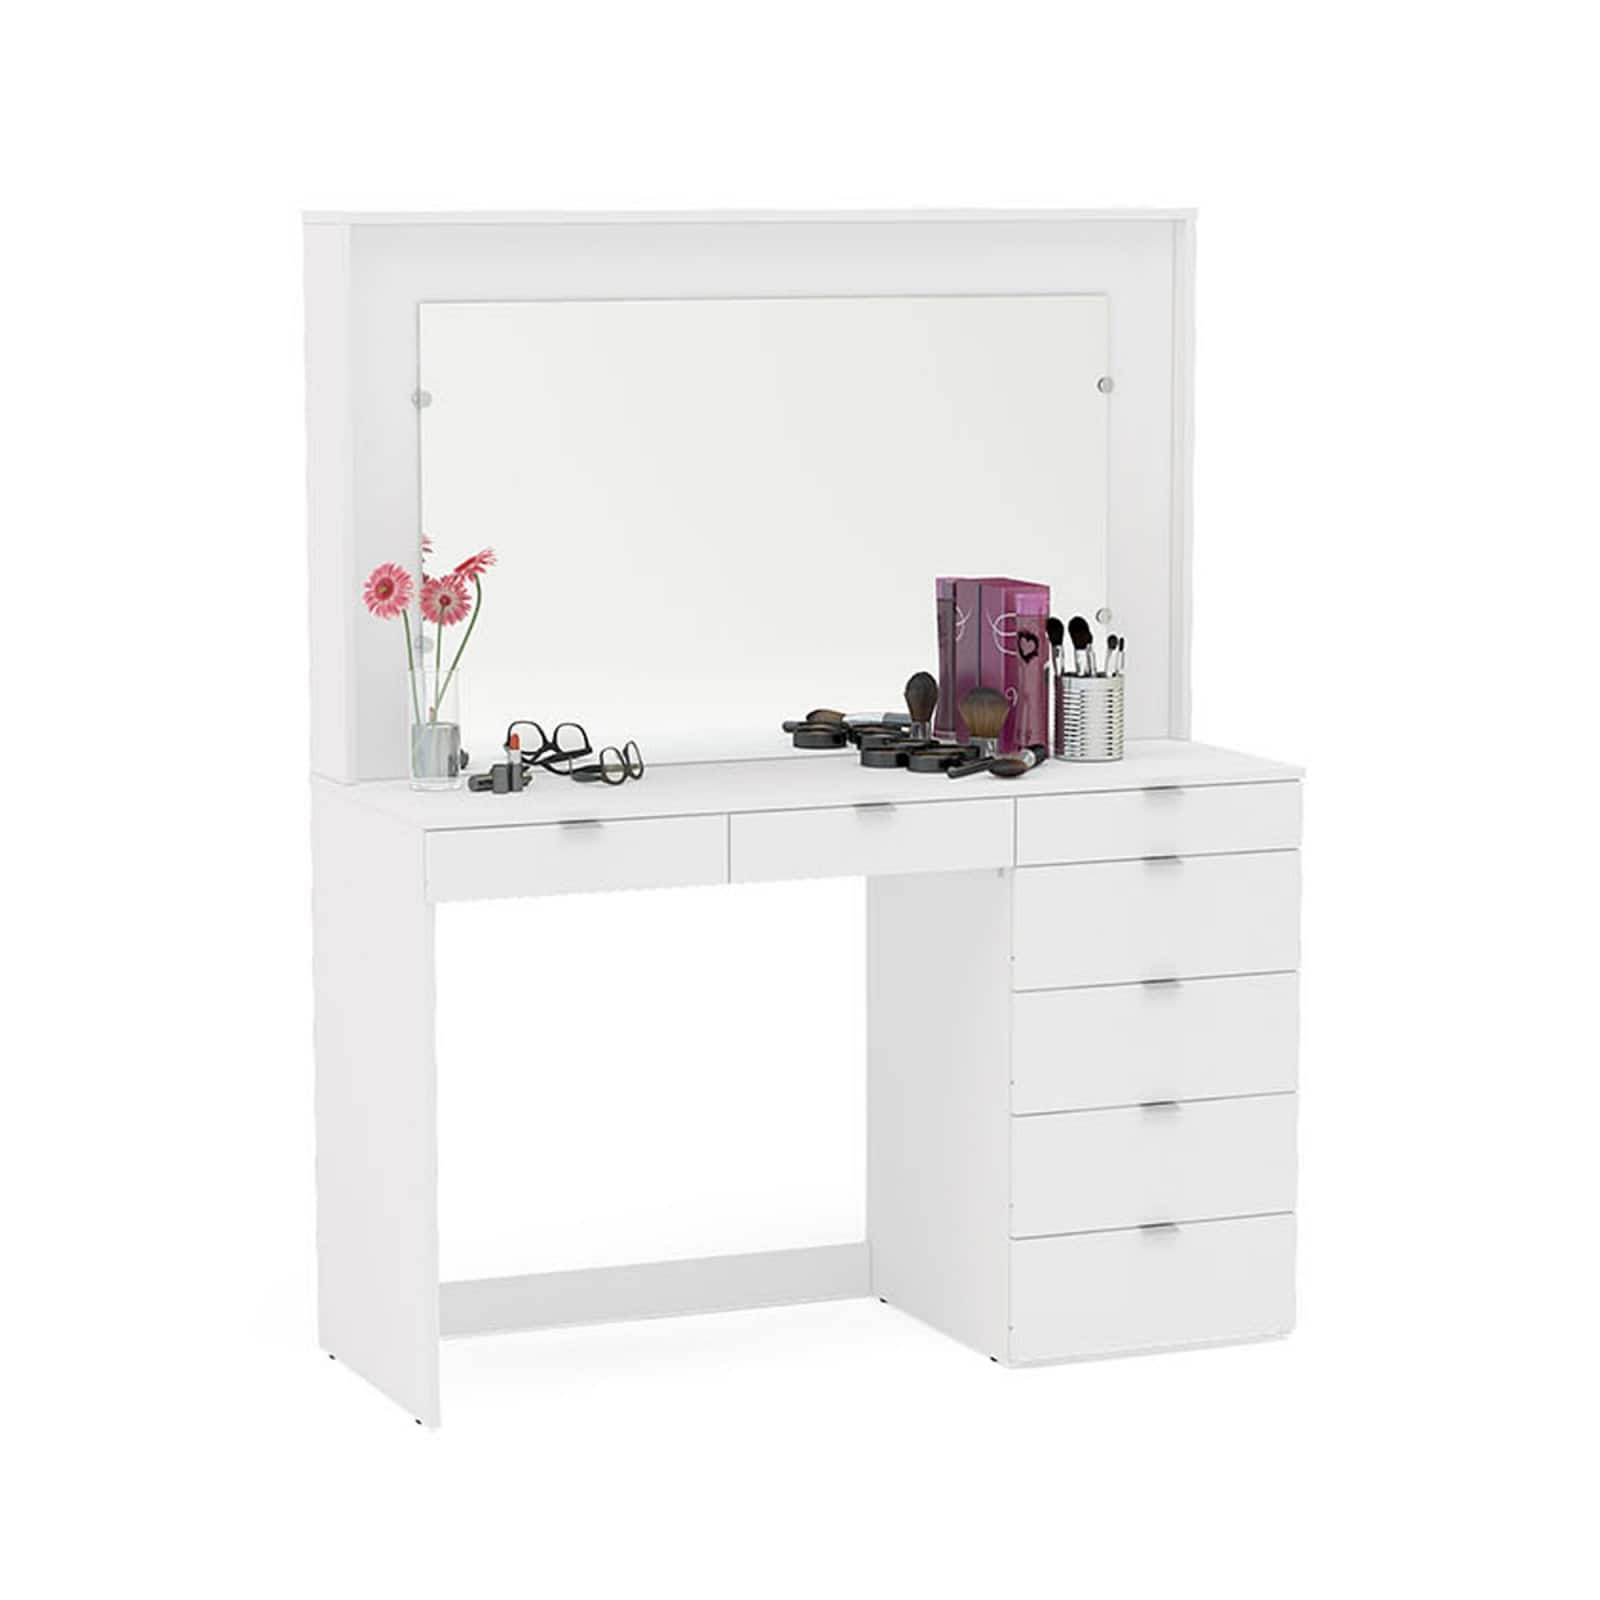 Boahaus Joan Modern Vanity Table with Mirror and 3 Drawers (white) $200 + Free shipping